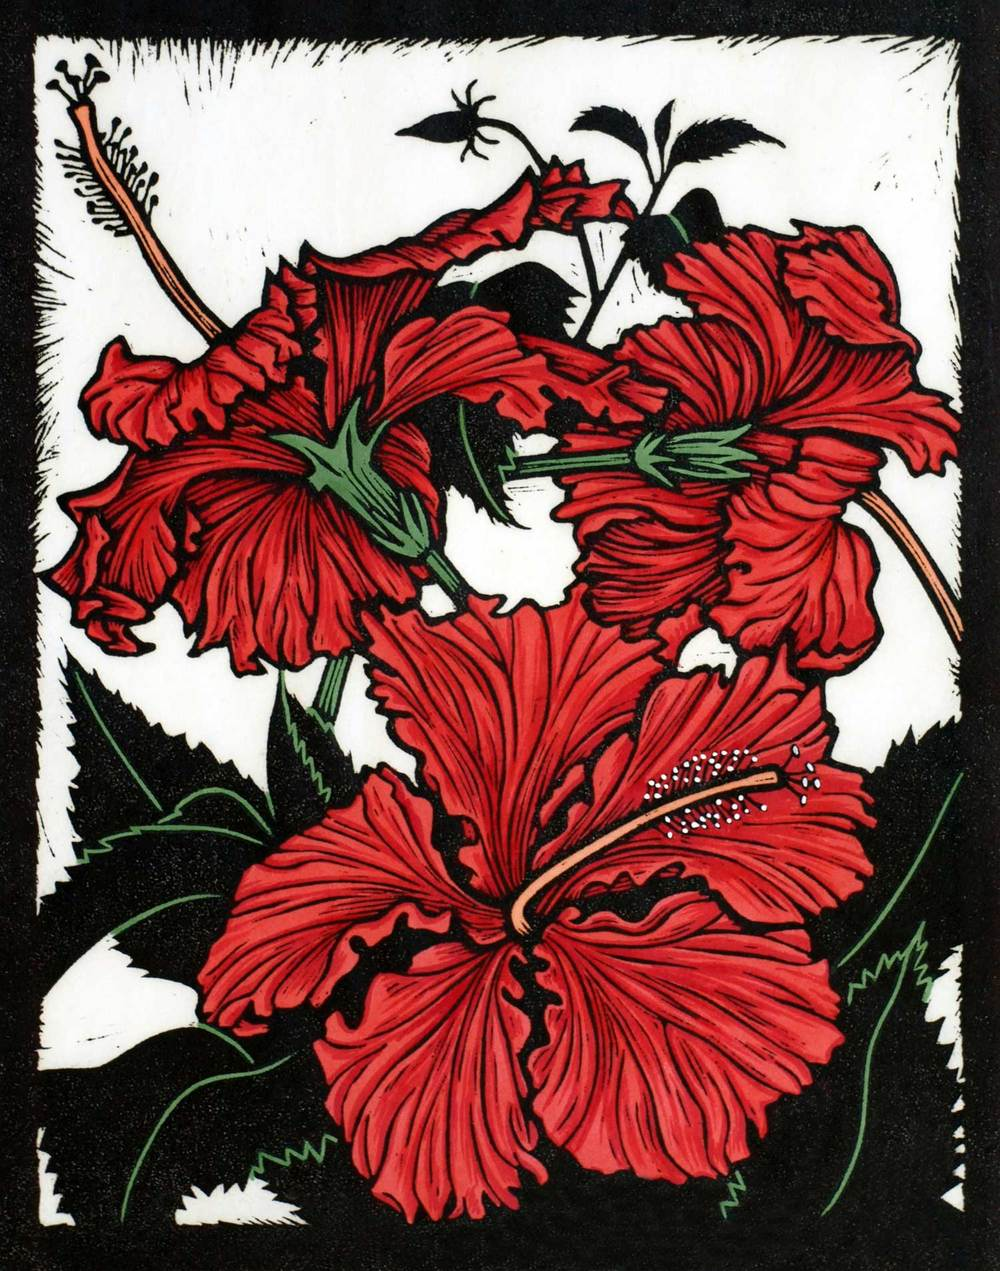 YANN'S RED HIBISCUS                               28 X 22 CM    EDITION OF 50               HAND COLOURED LINOCUT ON HANDMADE JAPANESE PAPer            $650